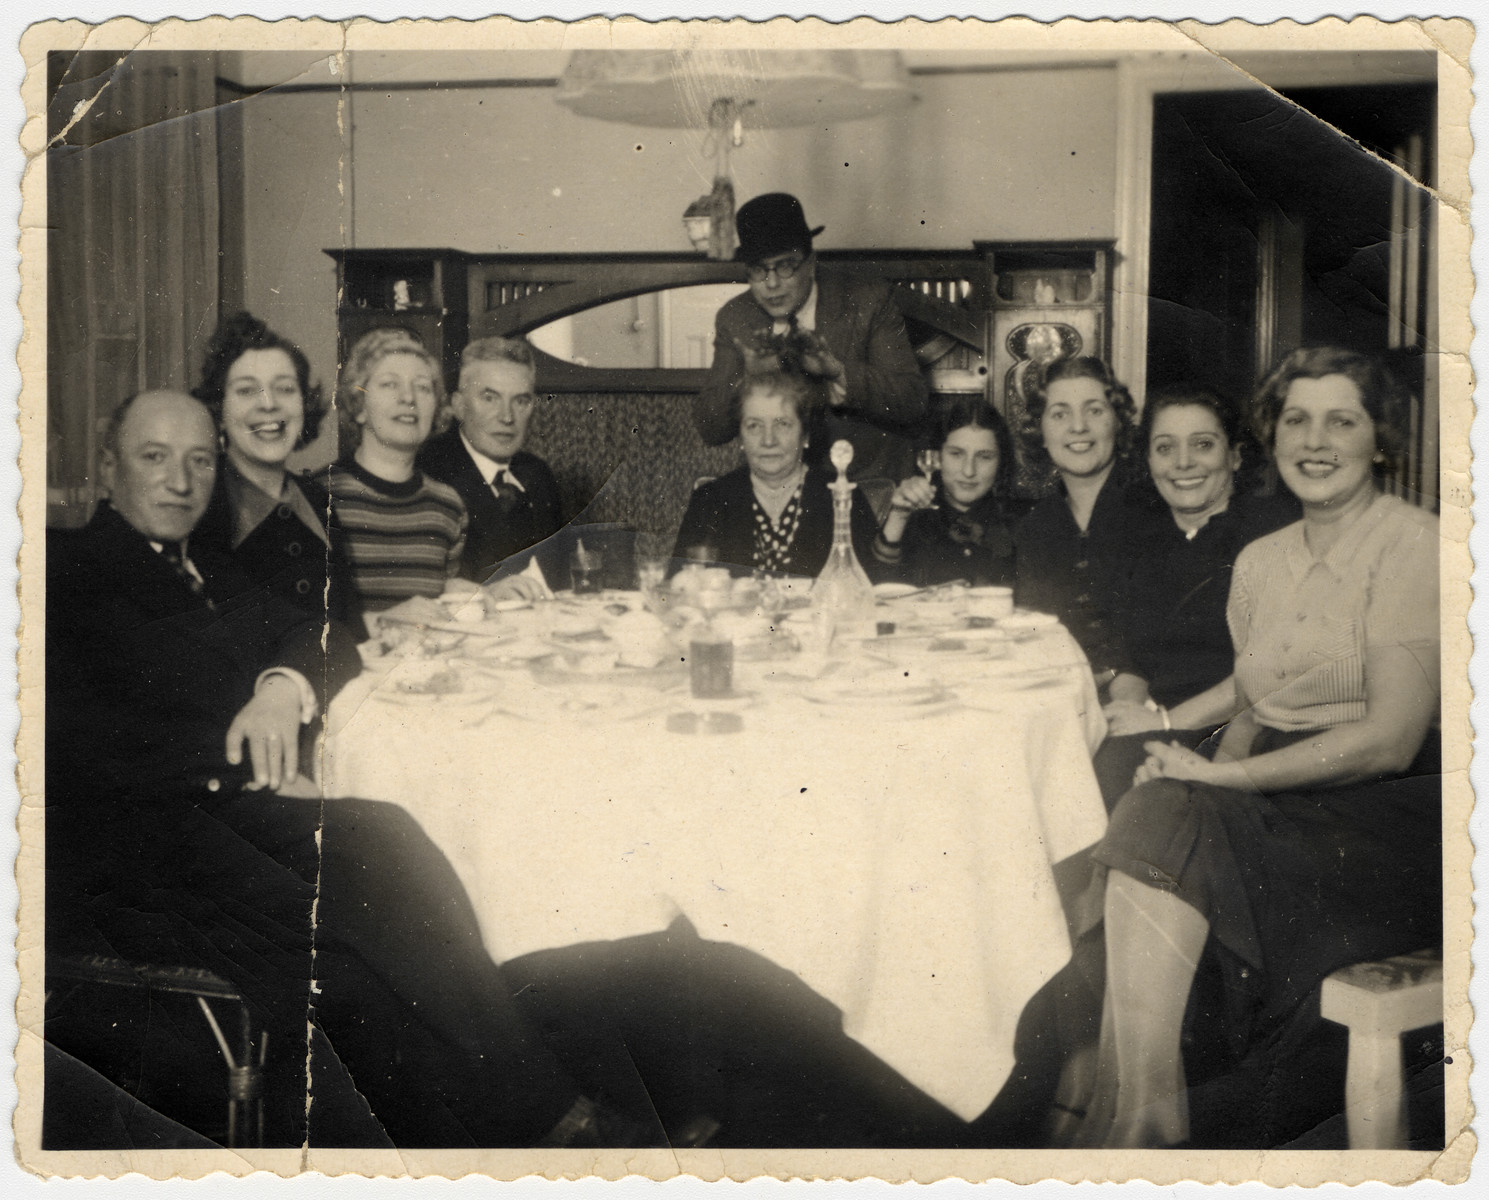 A Latvian-Jewish family gathers around its dining room table.  The photo was taken in the home of the donor's aunt, Gusti Jakobson Akermann.  Left to right: Oskar (Gusti's husband), Lena and Rita Jakobson (sisters of Klara and Gusti), Marta Schiftan (the mother-in-law of Tania Jakobson Schiftan), Luba Akermann, Klara Schwab, Hermina Jakobson, and Gusti Akermann.